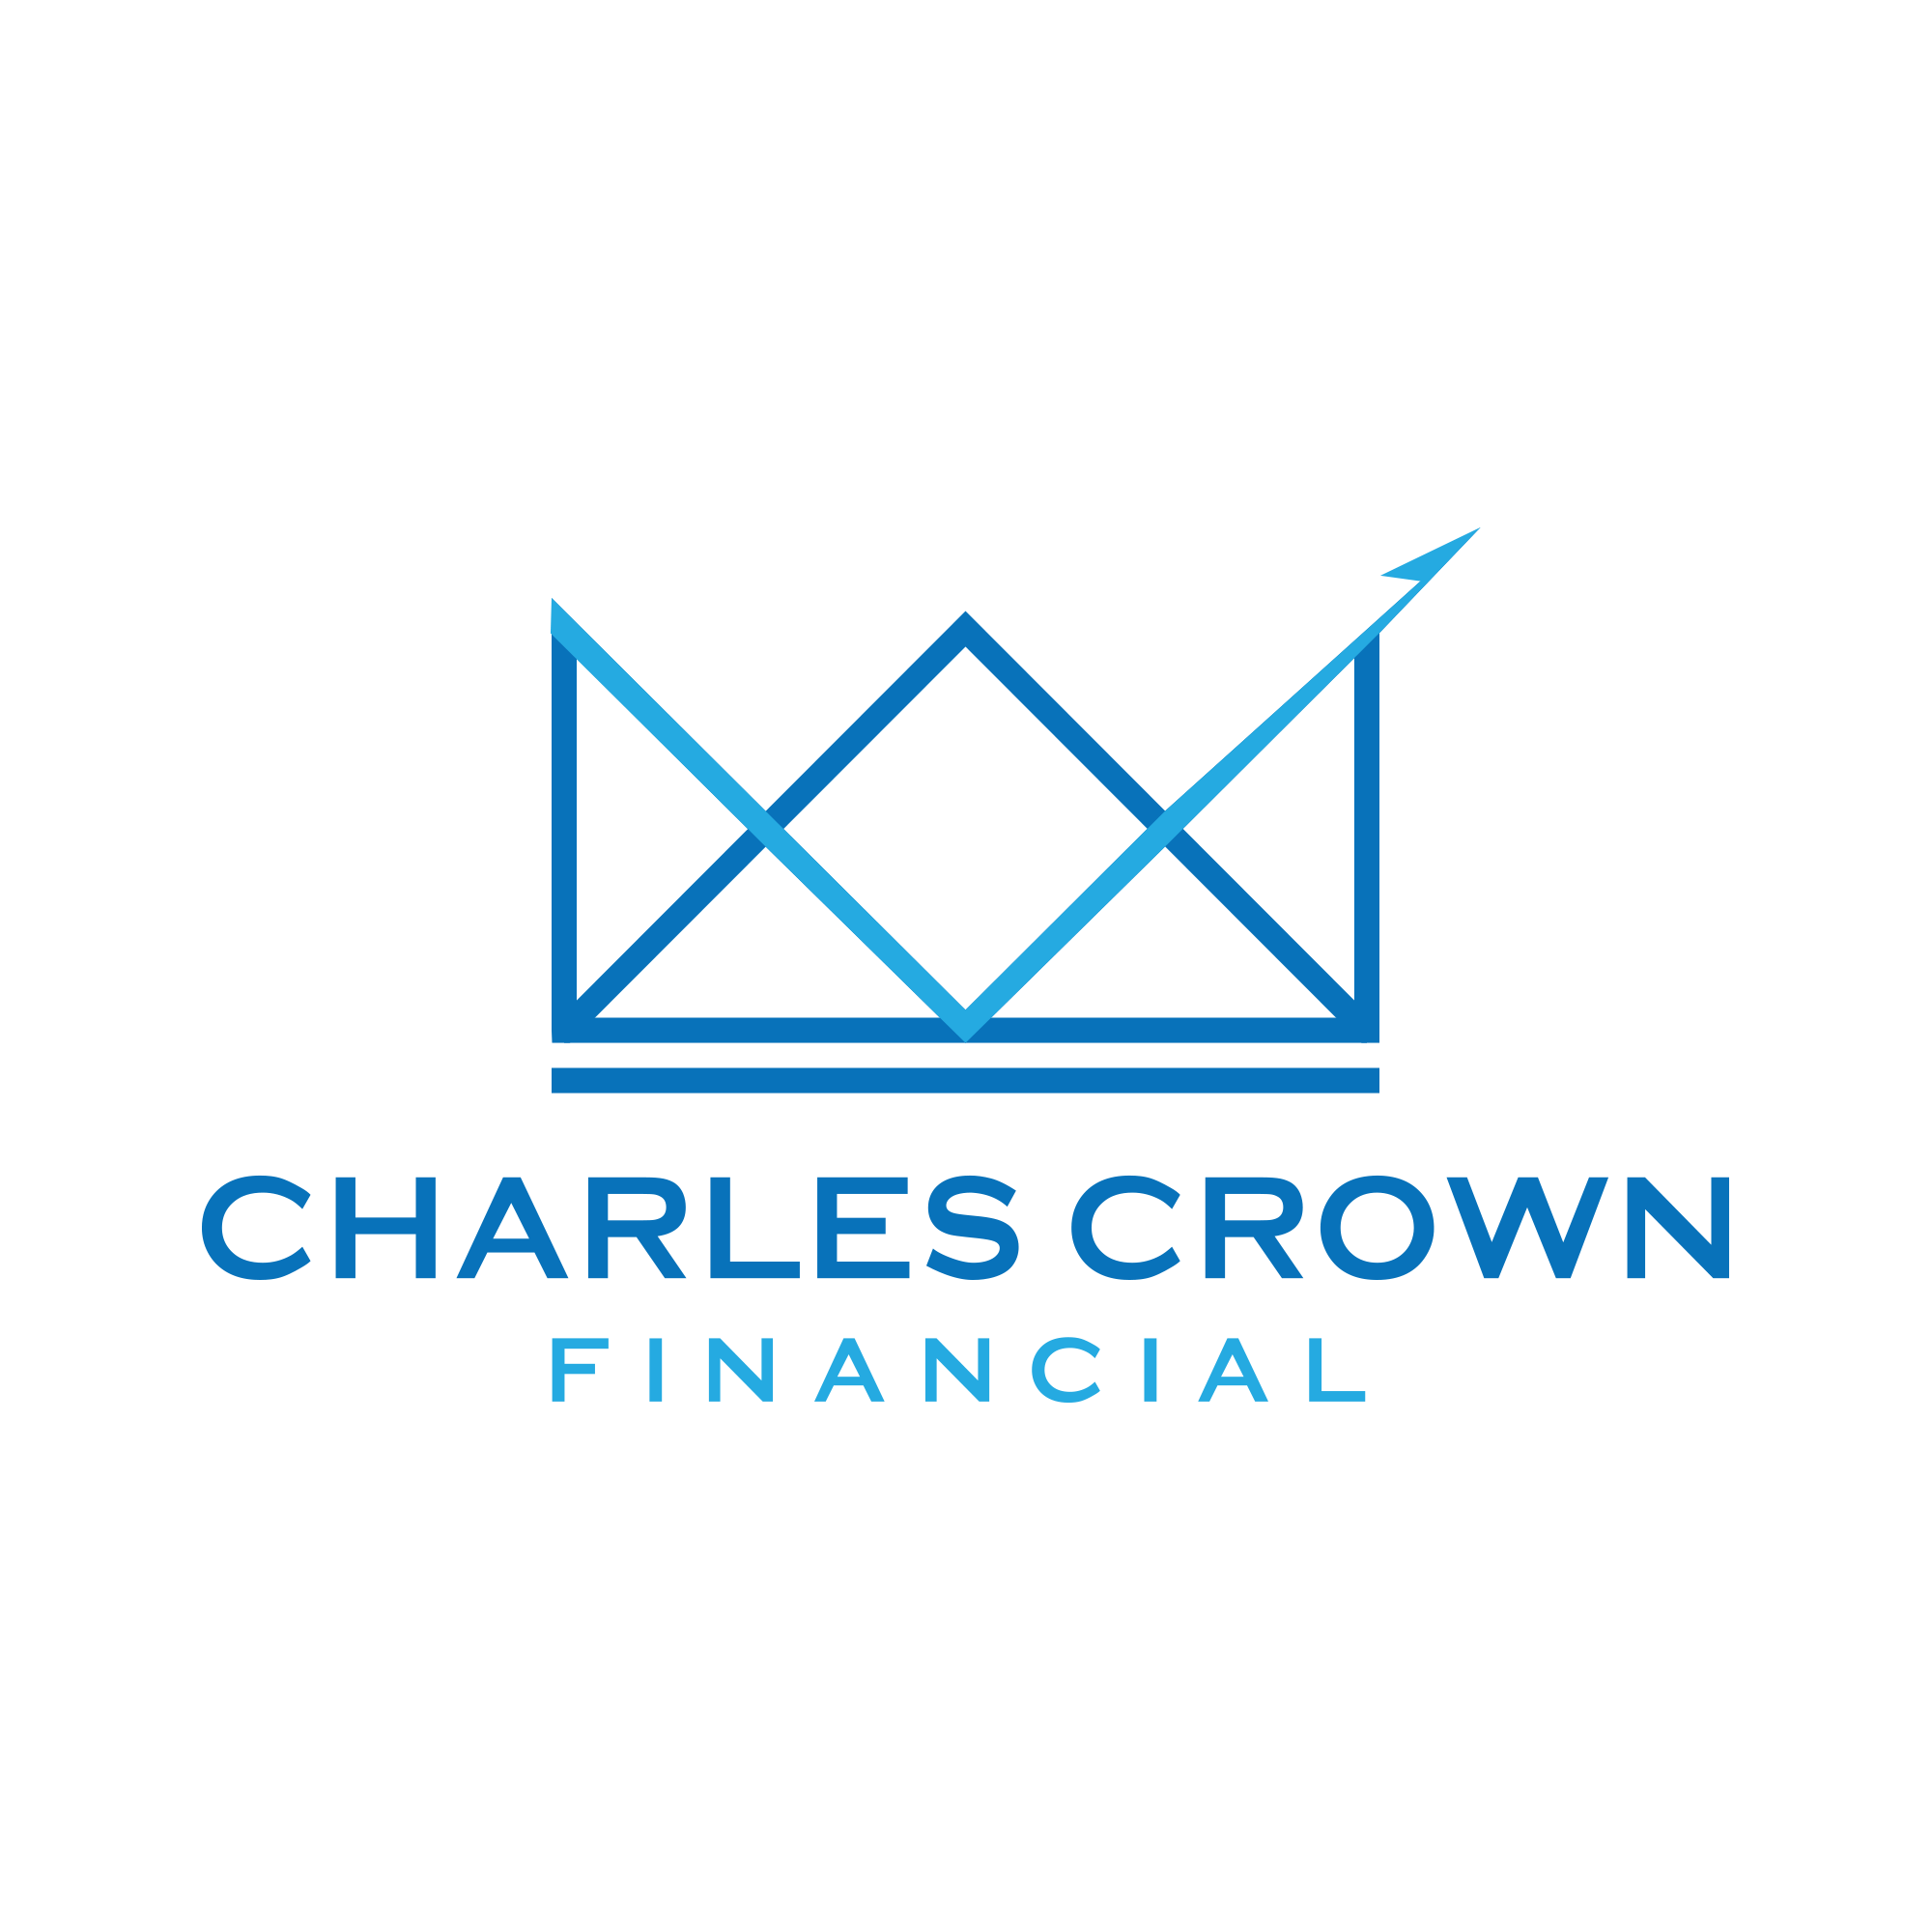 Charles Crown Financial